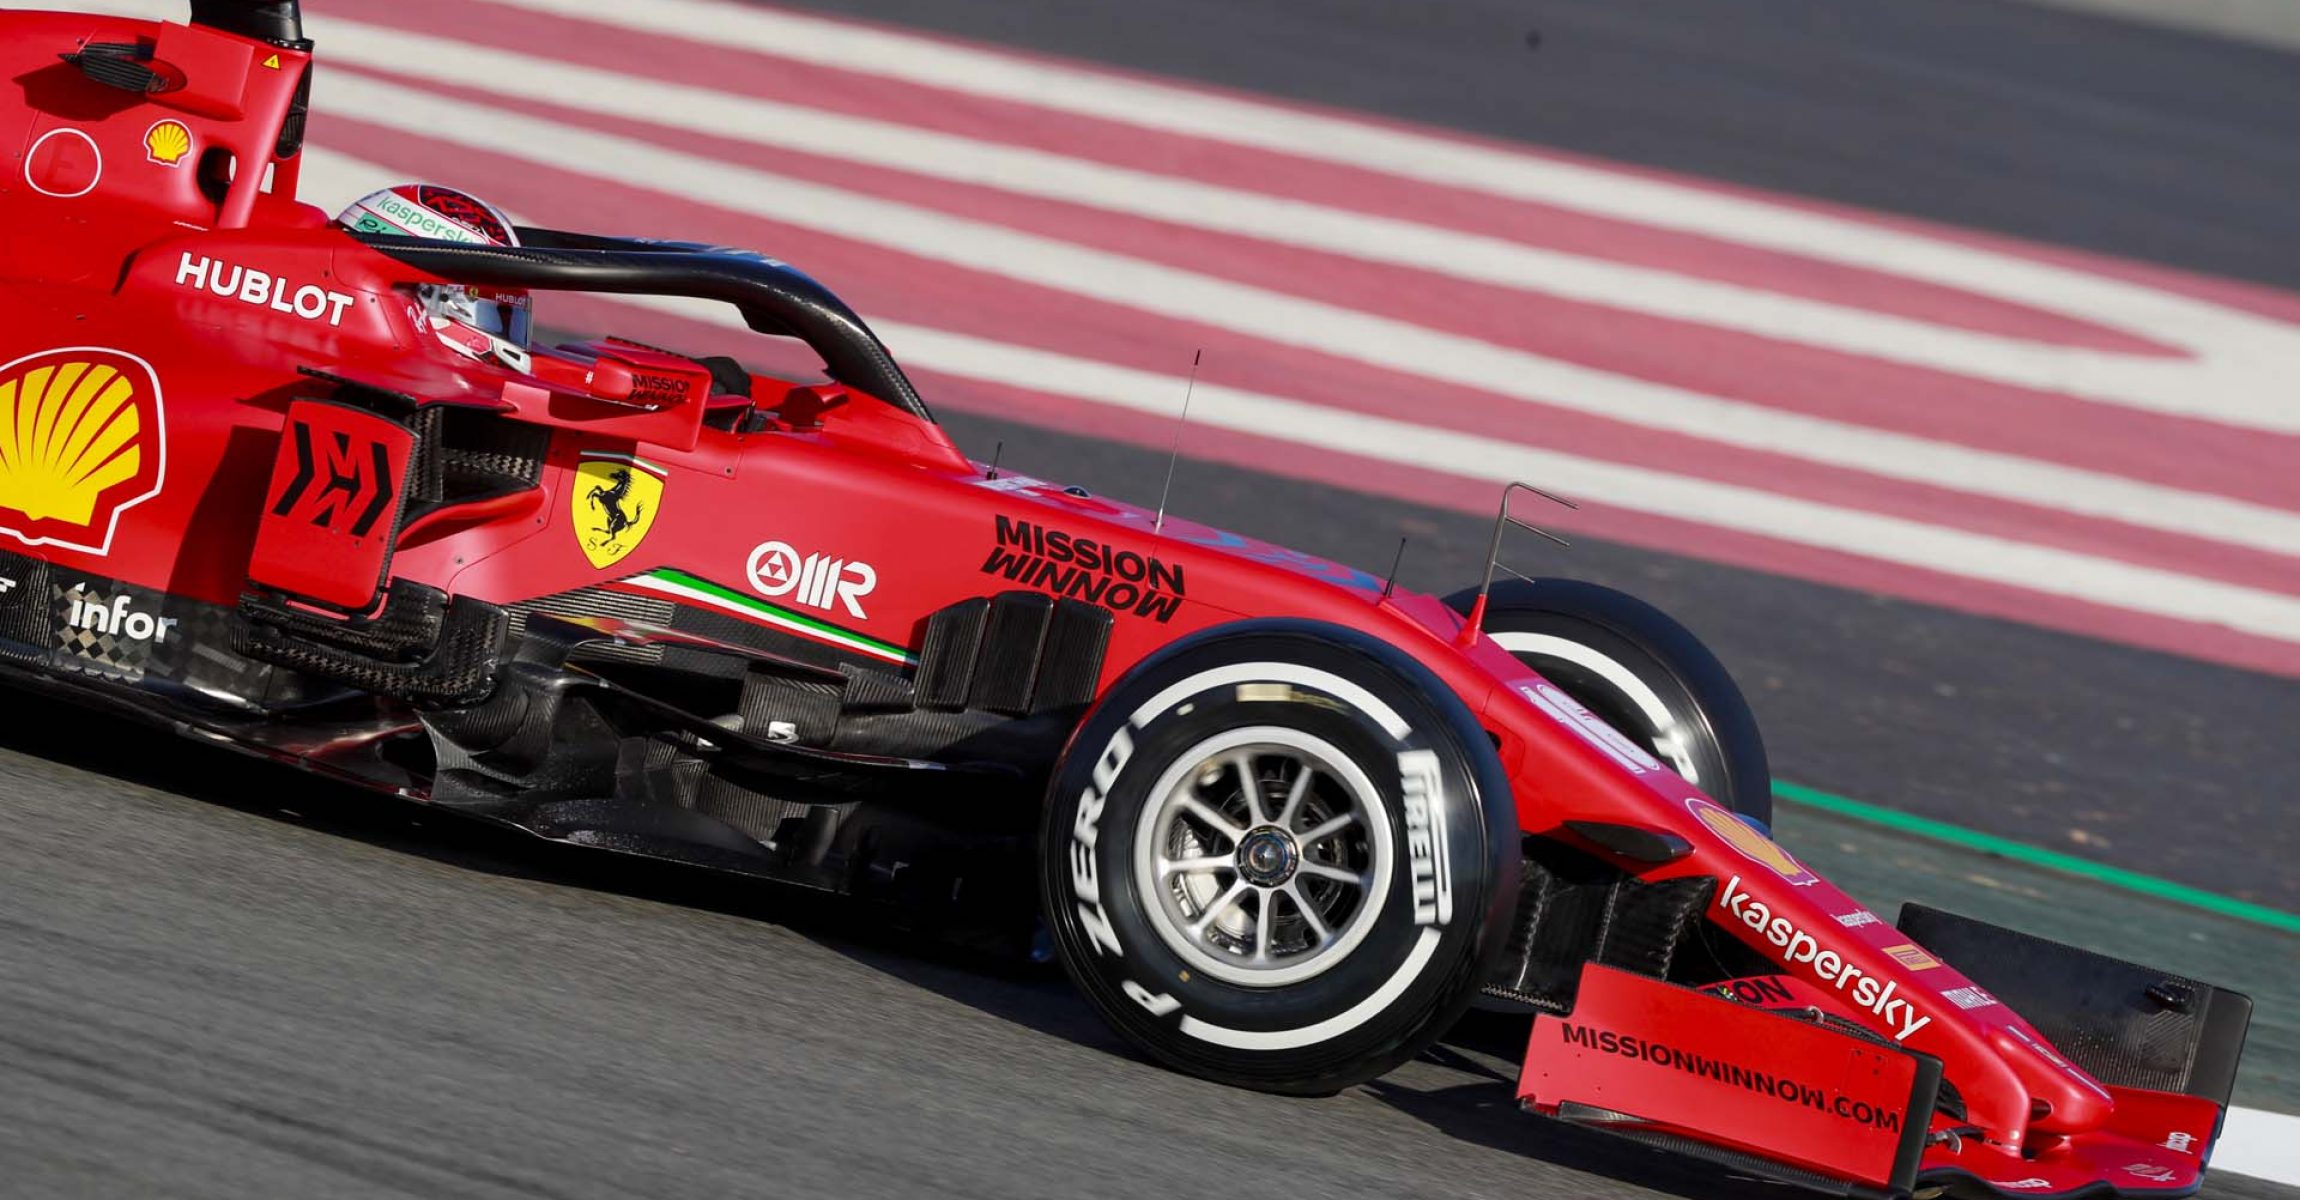 CIRCUIT DE BARCELONA-CATALUNYA, SPAIN - FEBRUARY 19: Charles Leclerc, Ferrari SF1000 during the Barcelona February testing I at Circuit de Barcelona-Catalunya on February 19, 2020 in Circuit de Barcelona-Catalunya, Spain. (Photo by Steven Tee / LAT Images)